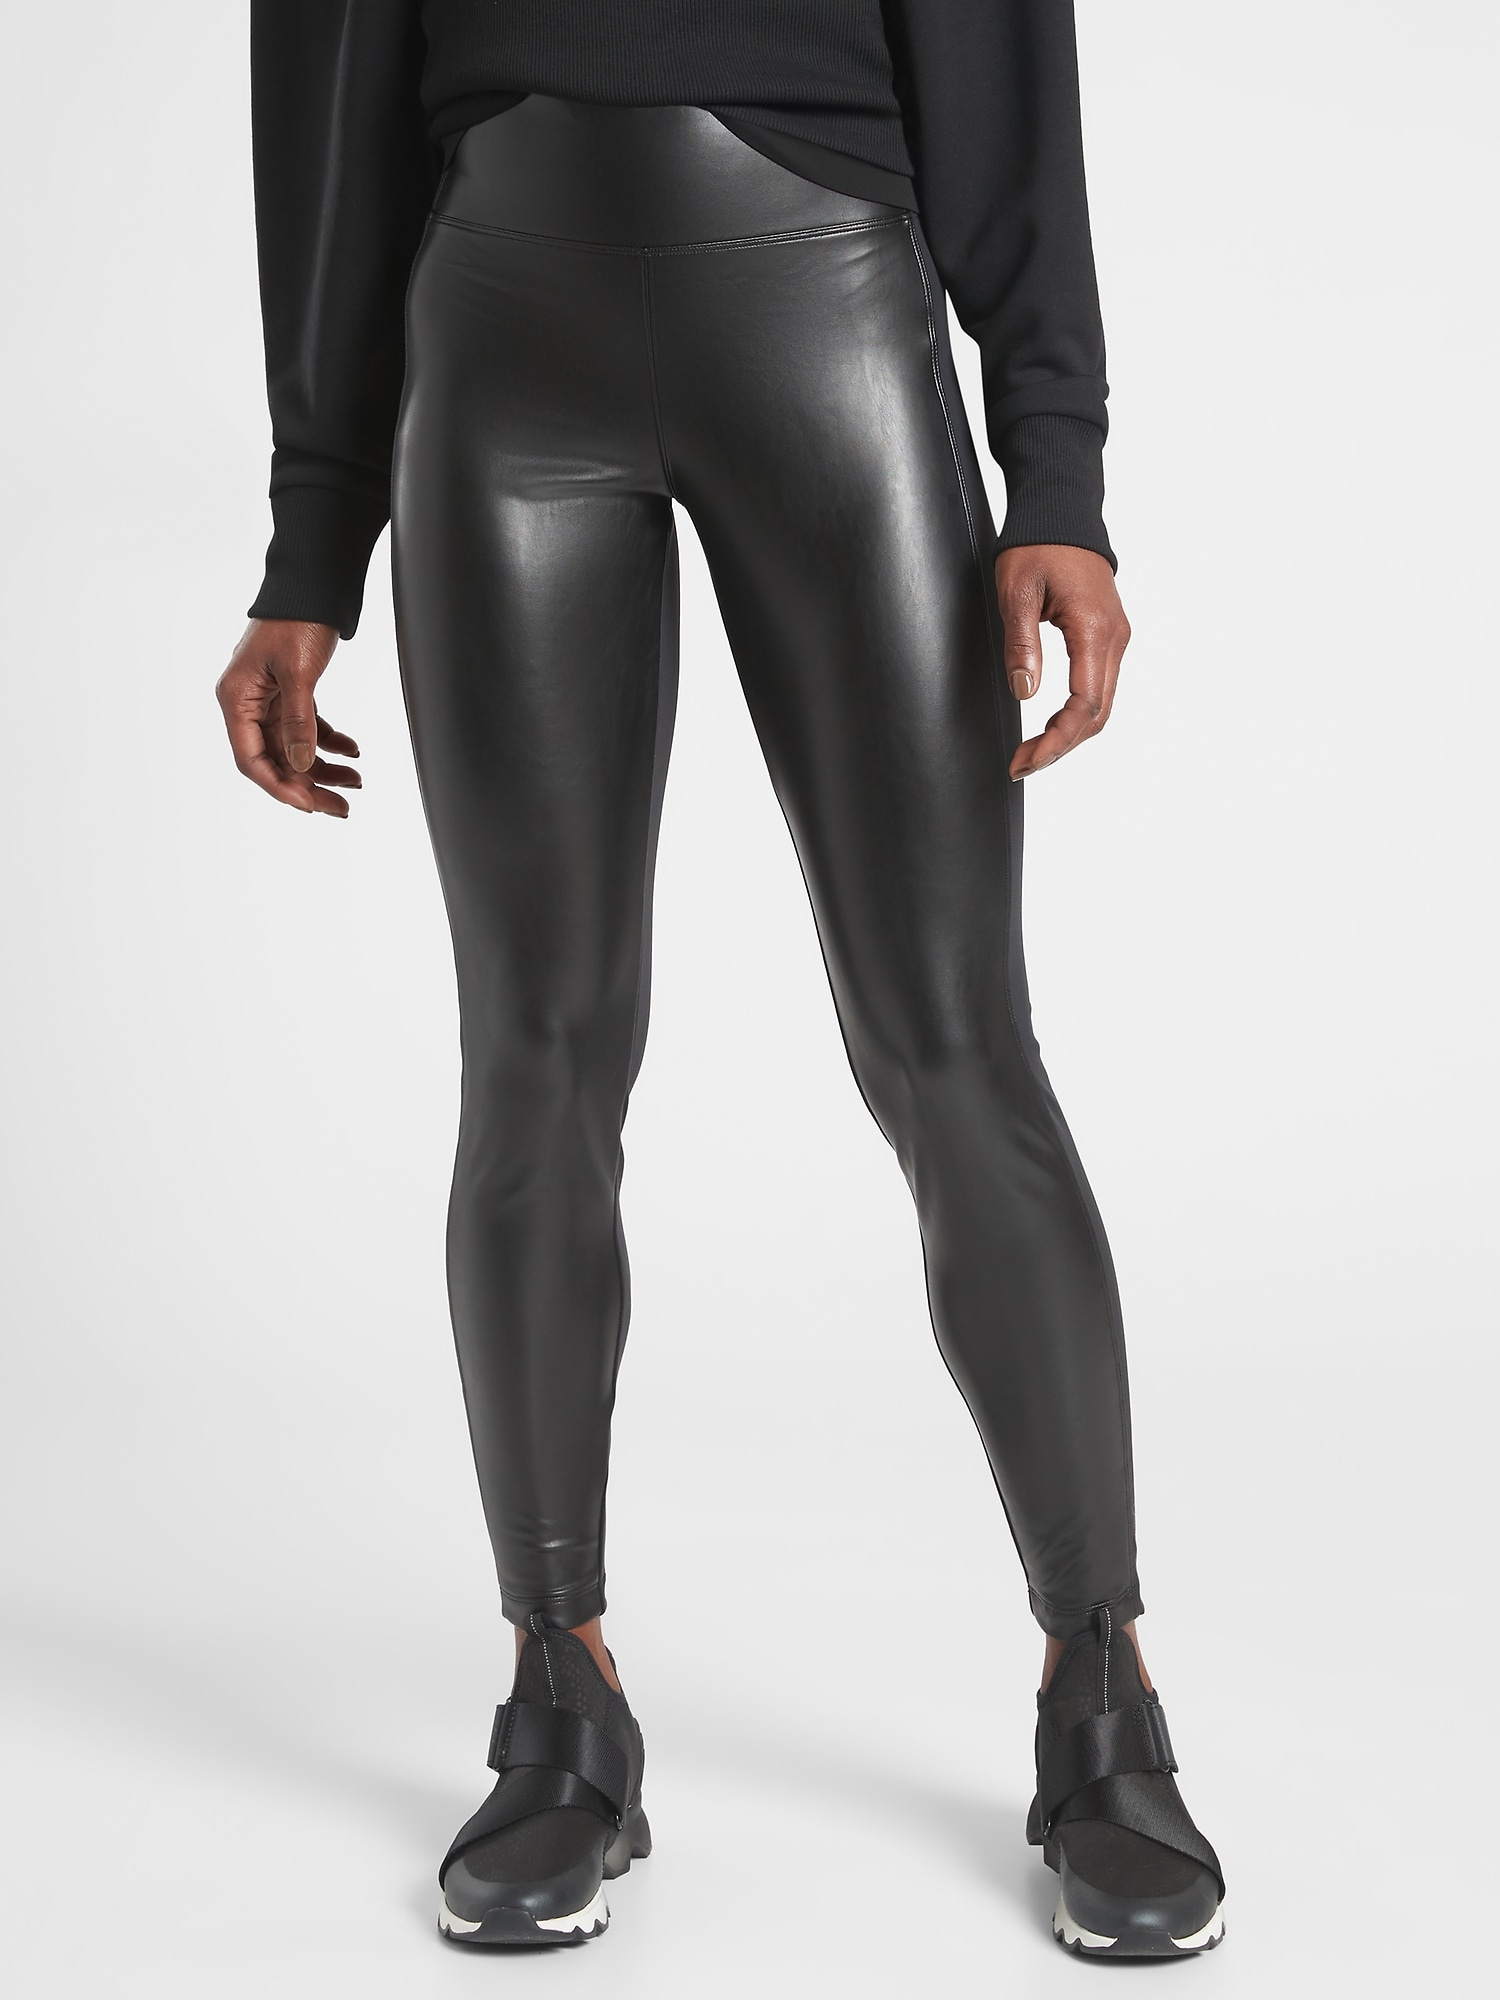 Delancey Gleam Tight (Was $98, Now $79.99)